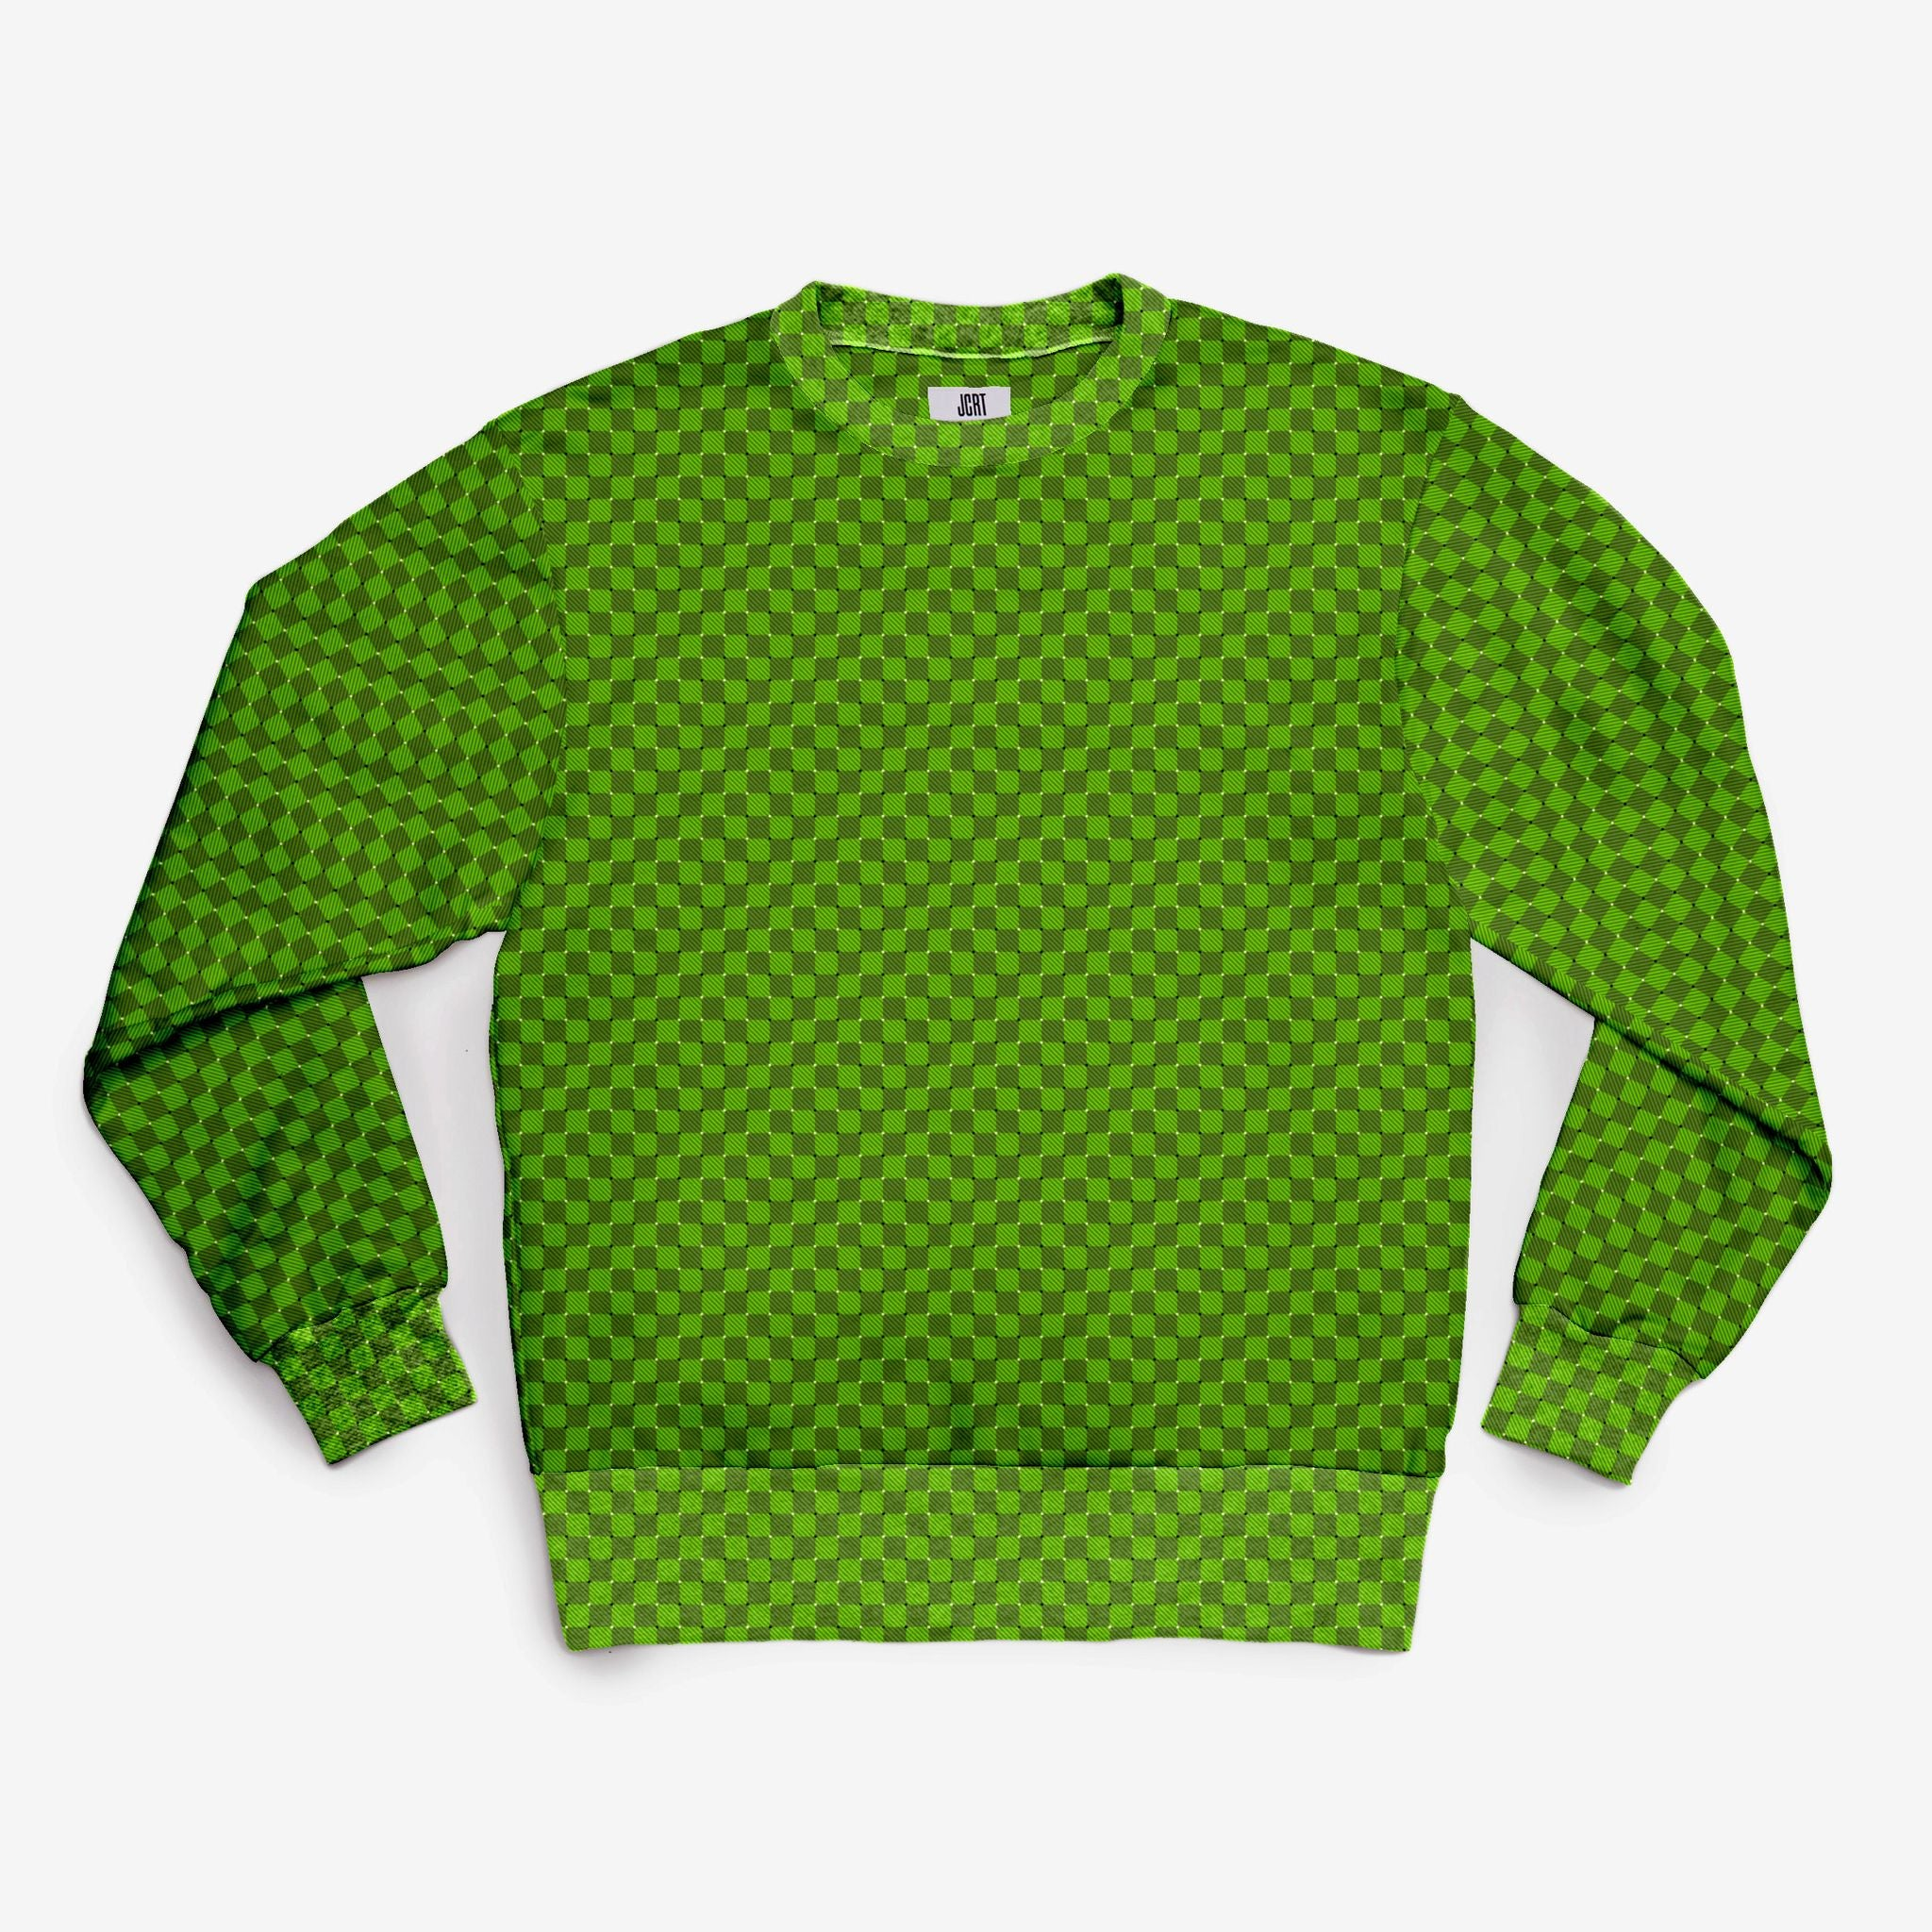 The Groovy Green Check Sweatshirt